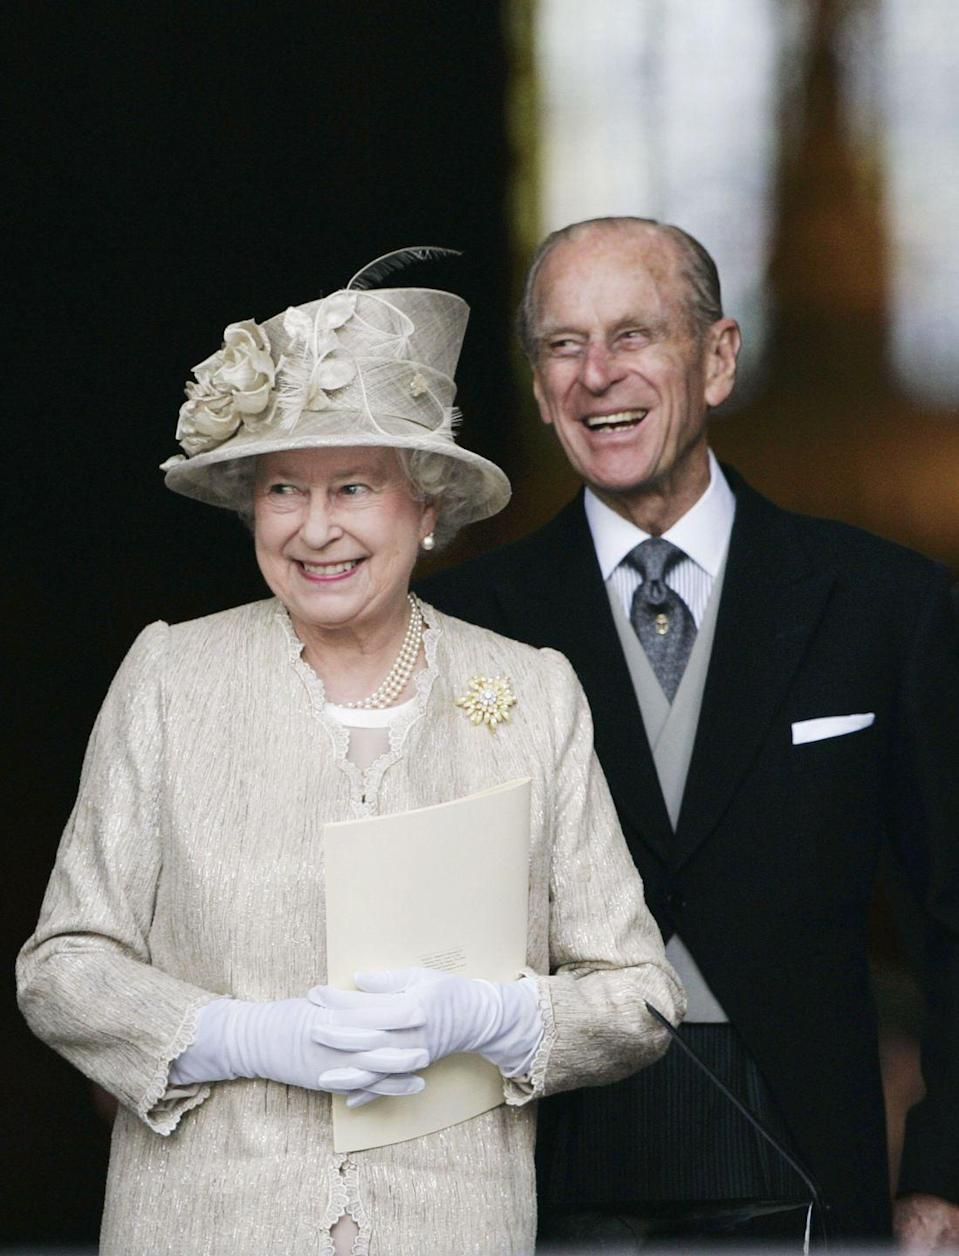 <p>Queen Elizabeth and Prince Philip arrive at St. Paul's Cathedral for a service of thanksgiving held in honor of the Queen's 80th birthday.</p>